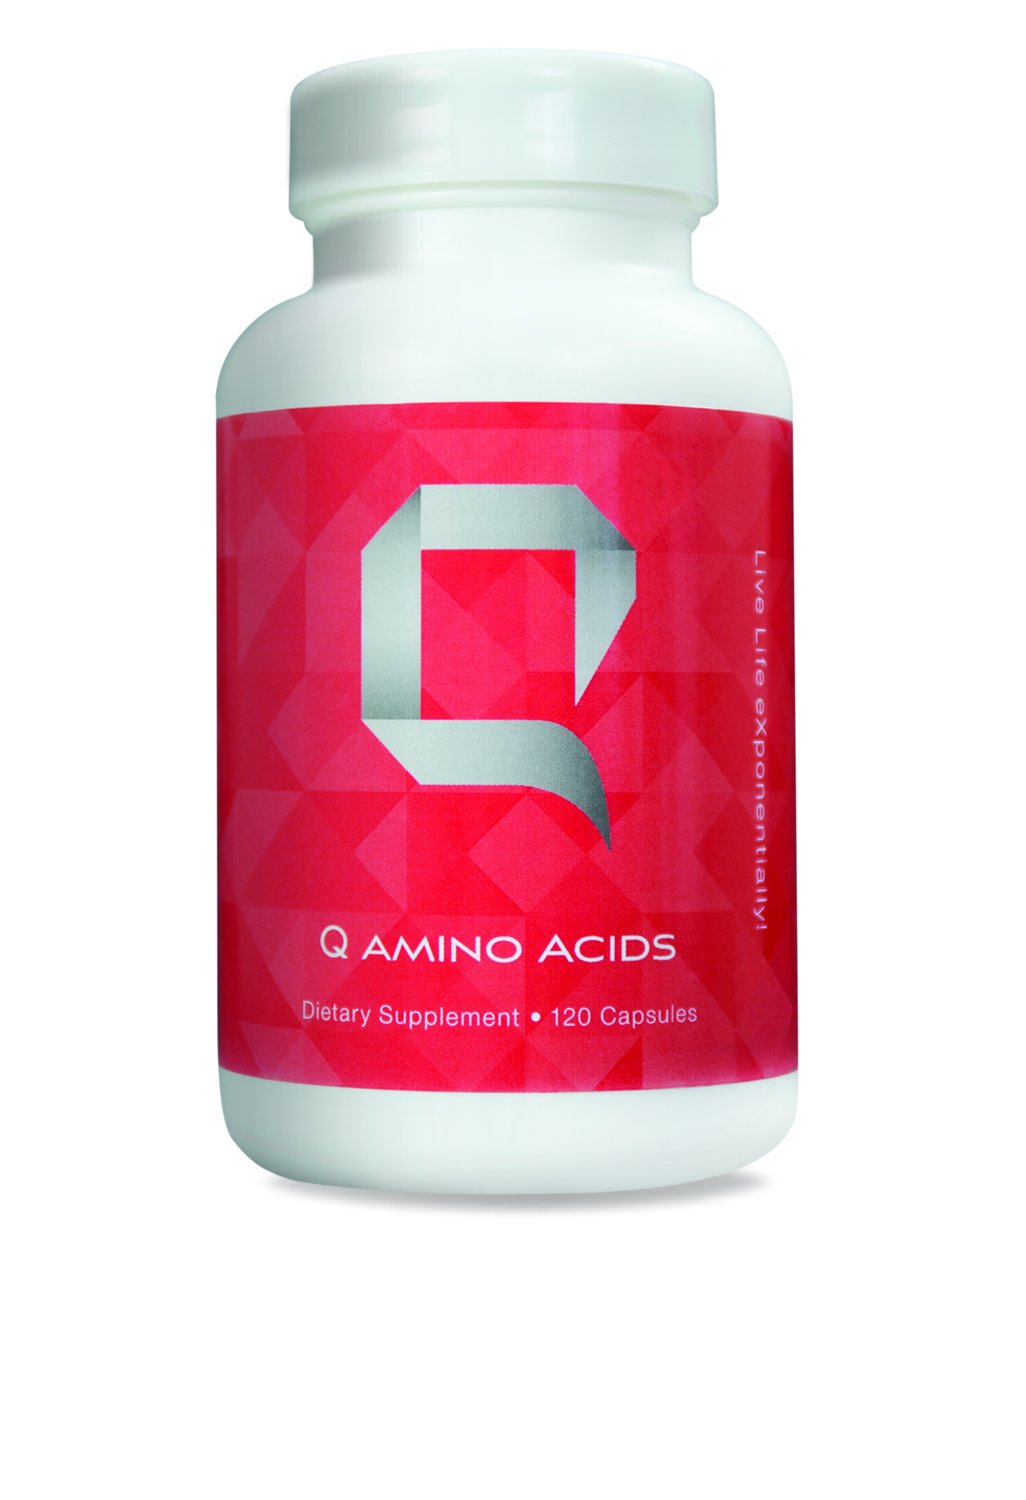 Q Amino Acids - Q Sciences Nutritional and Energy Supplement with Essential Amino Acids | BCAA Supplements | Amino Acid Complex Formula | L-Glutamine | Complete Amino Acid Vitamins - 120 Capsules